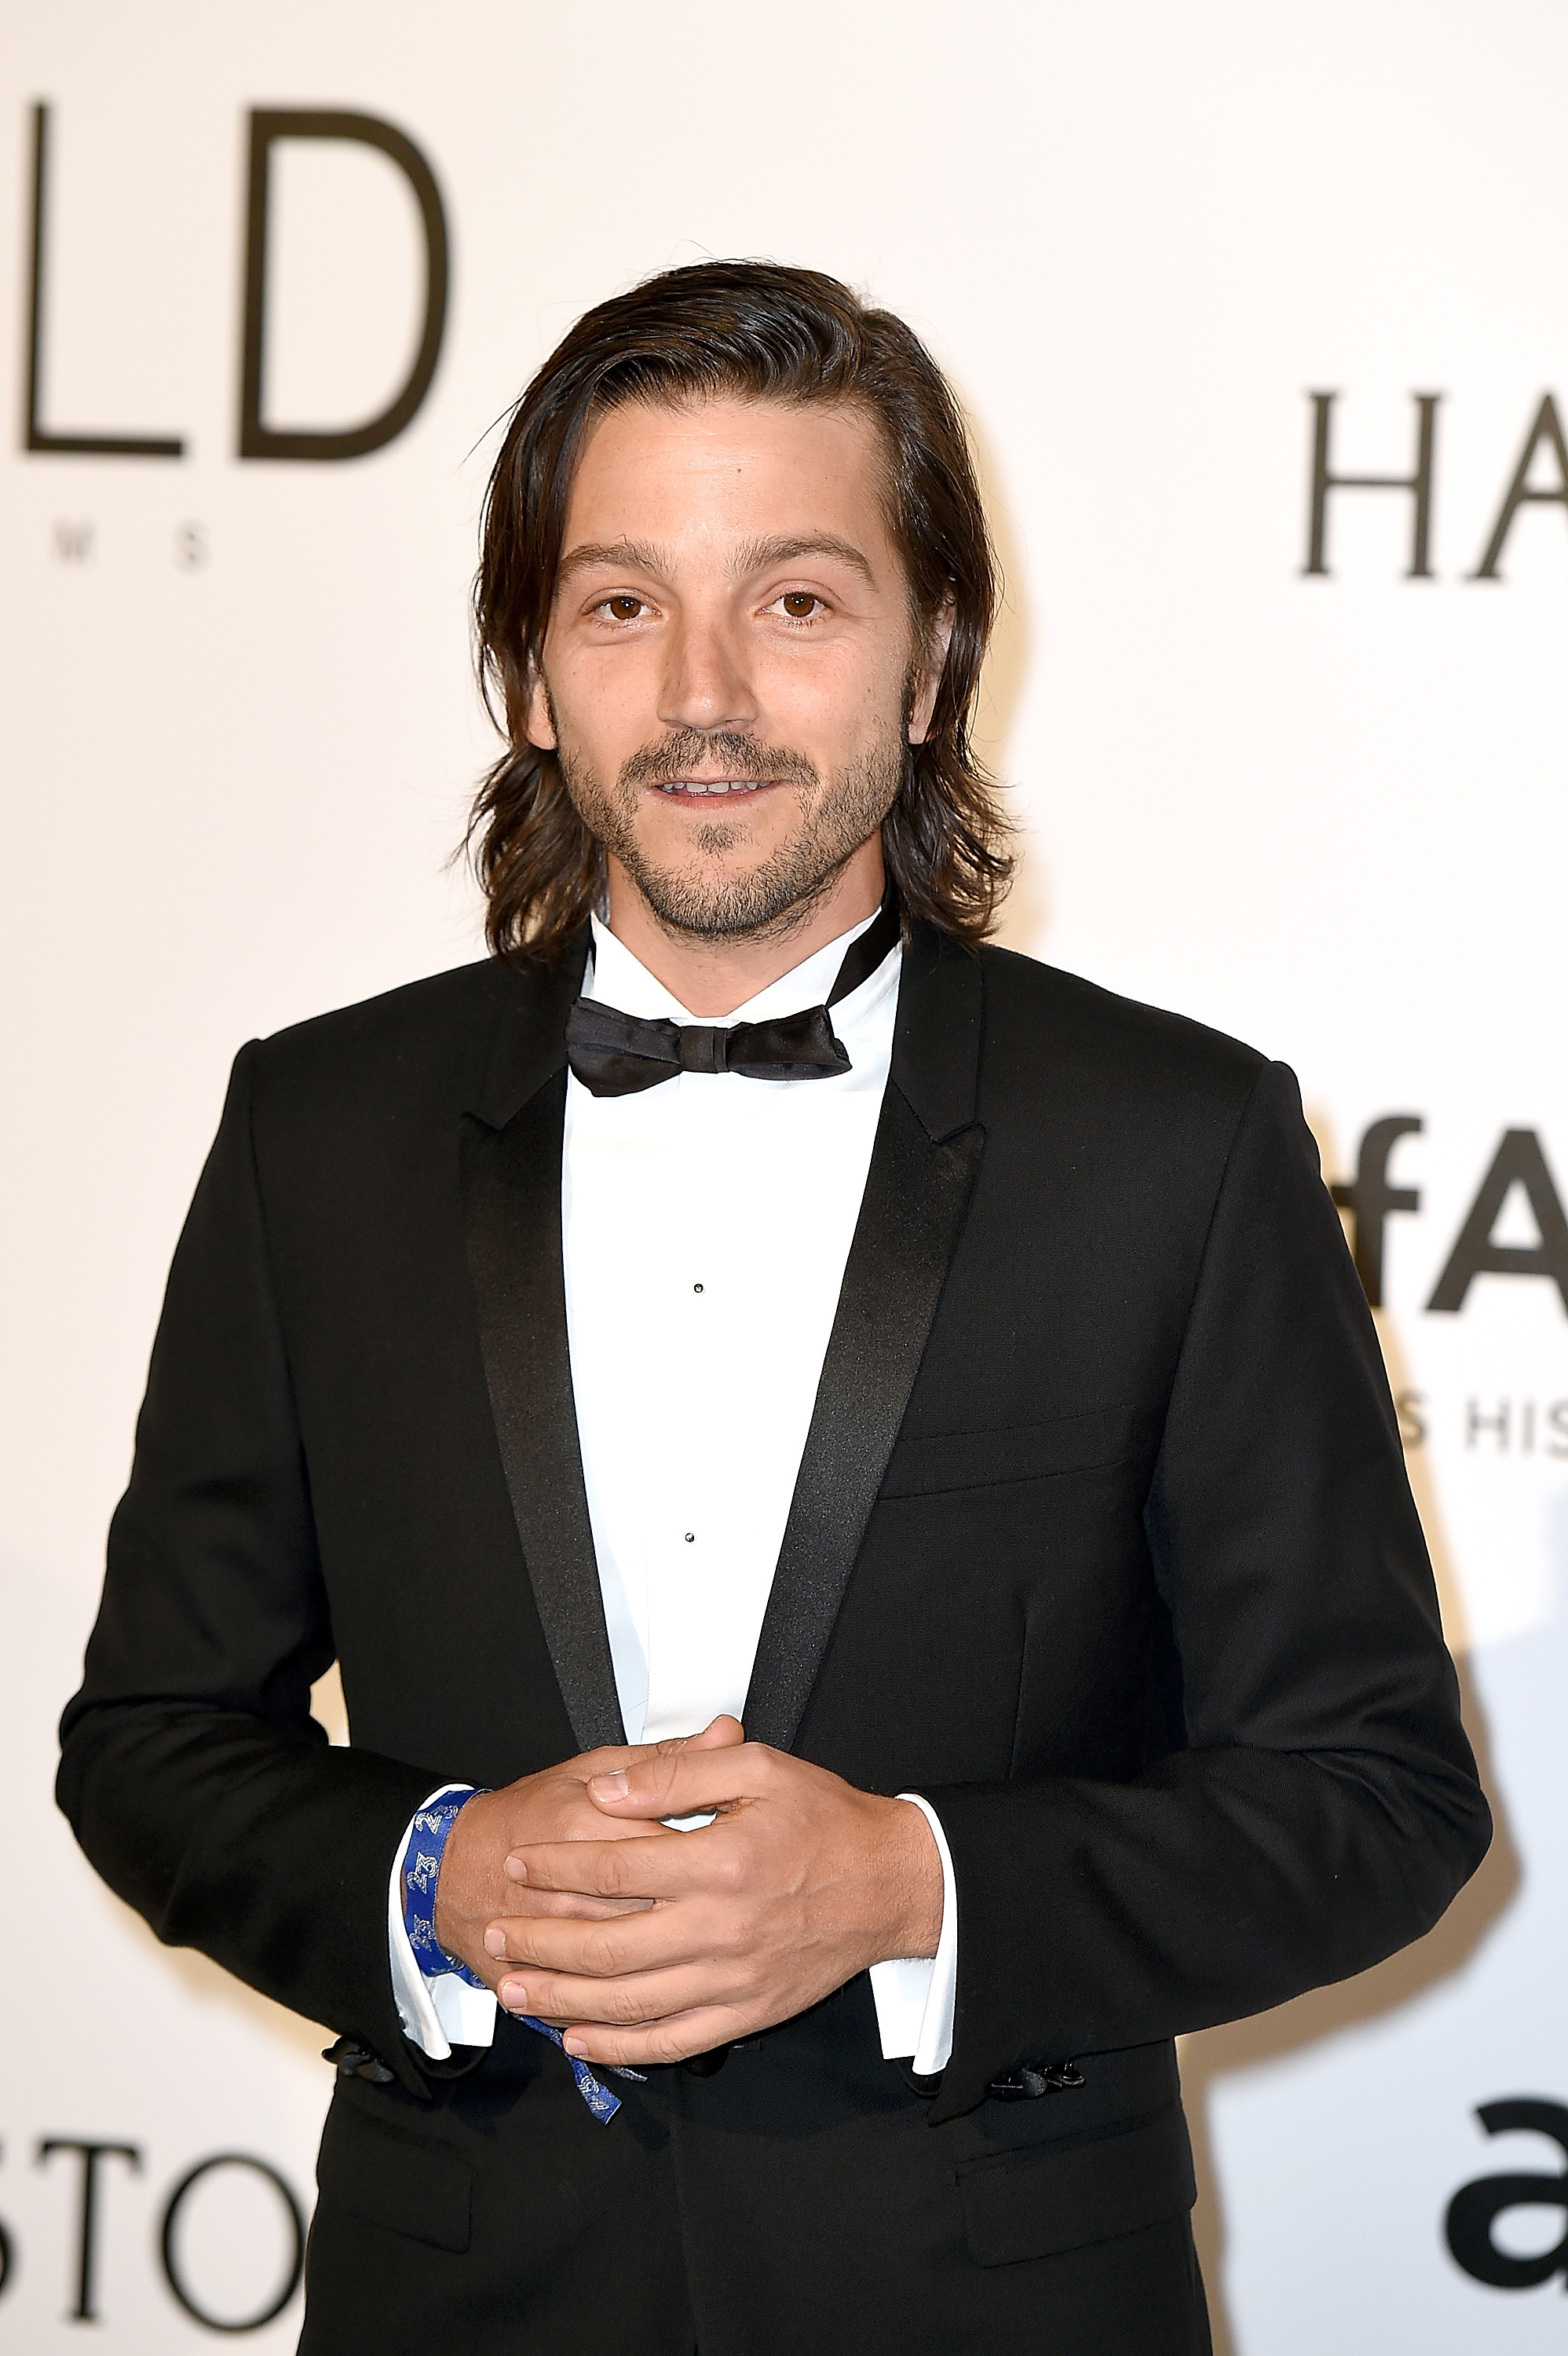 CAP D'ANTIBES, FRANCE - MAY 19: Diego Luna attends the amfAR's 23rd Cinema Against AIDS Gala at the annual 69th Cannes Film Festival at Hotel du Cap-Eden-Roc on May 19, 2016 in Cap d'Antibes, France. (Photo by Stephane Cardinale - Corbis/Corbis via Getty Images)